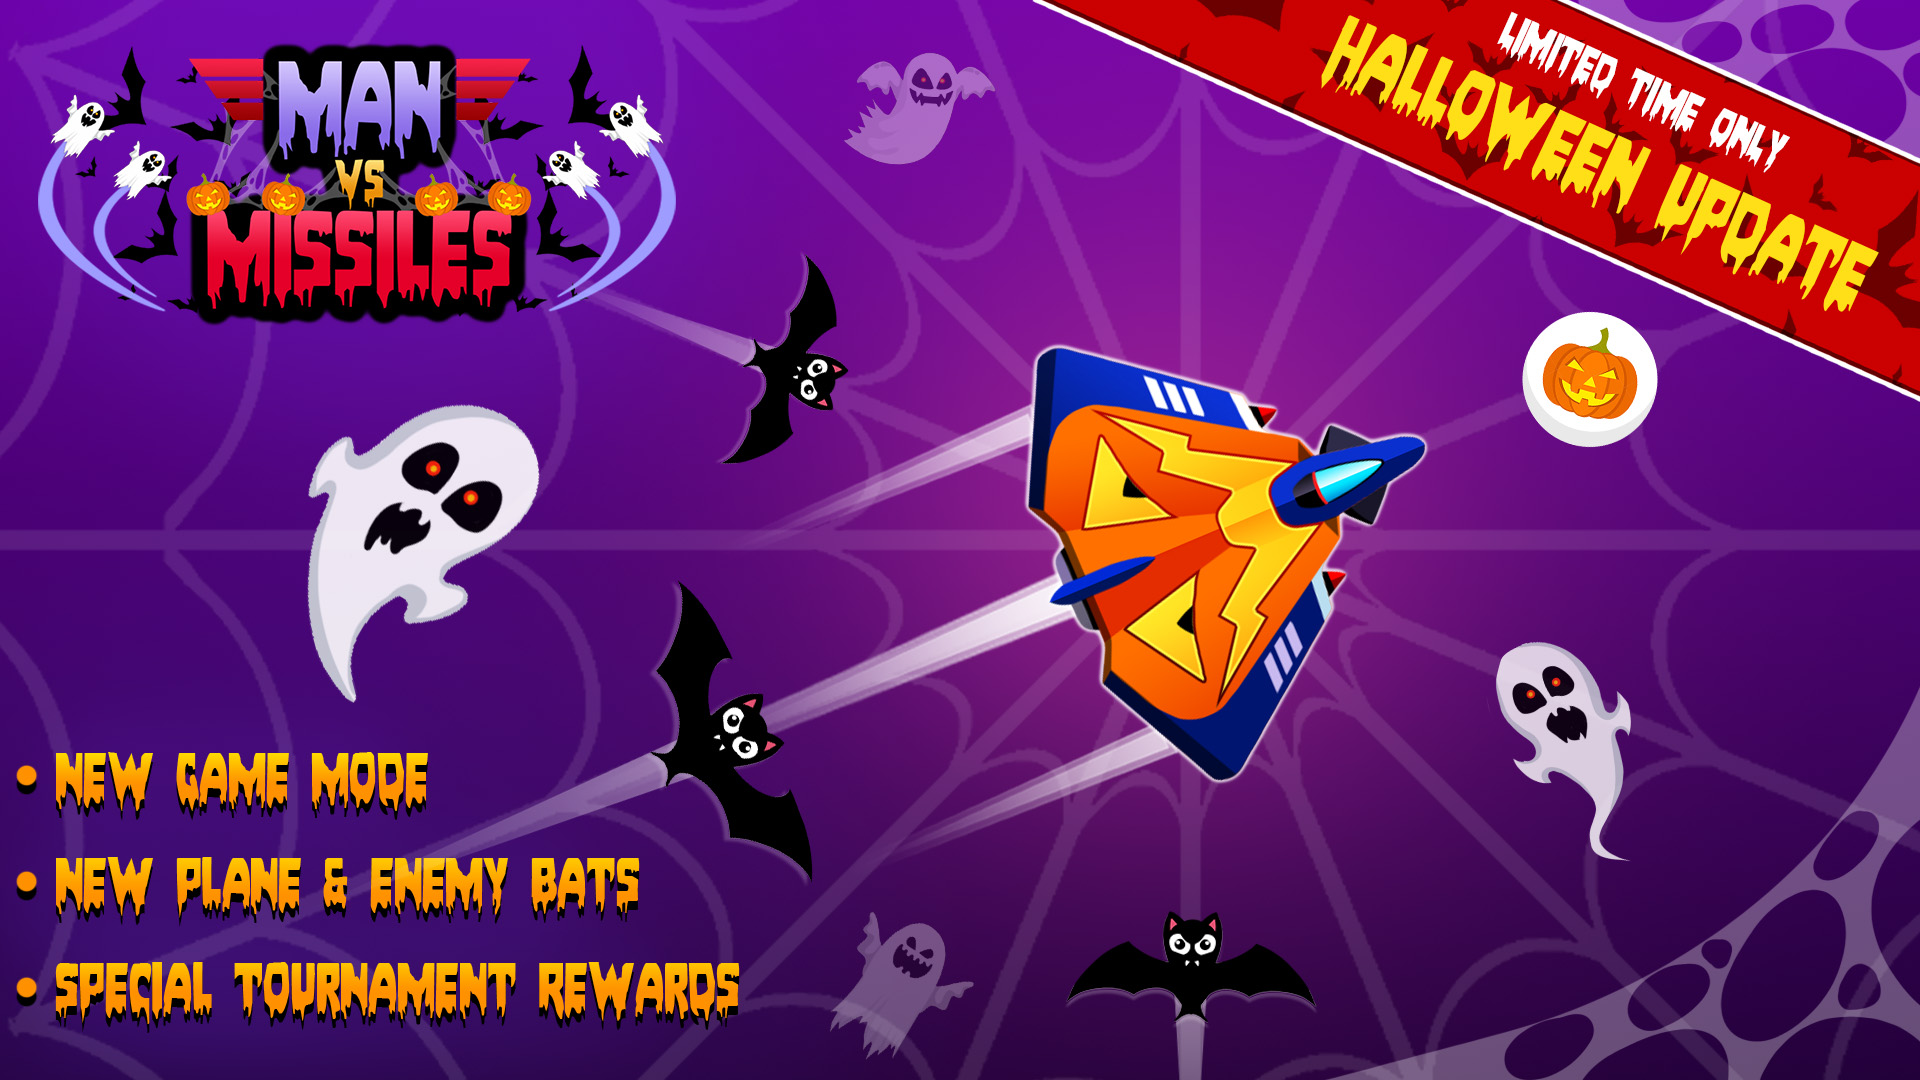 'Man Vs. Missiles' Halloween Update with New Mode, Leaderboards, UI Changes, and More Is Out Now